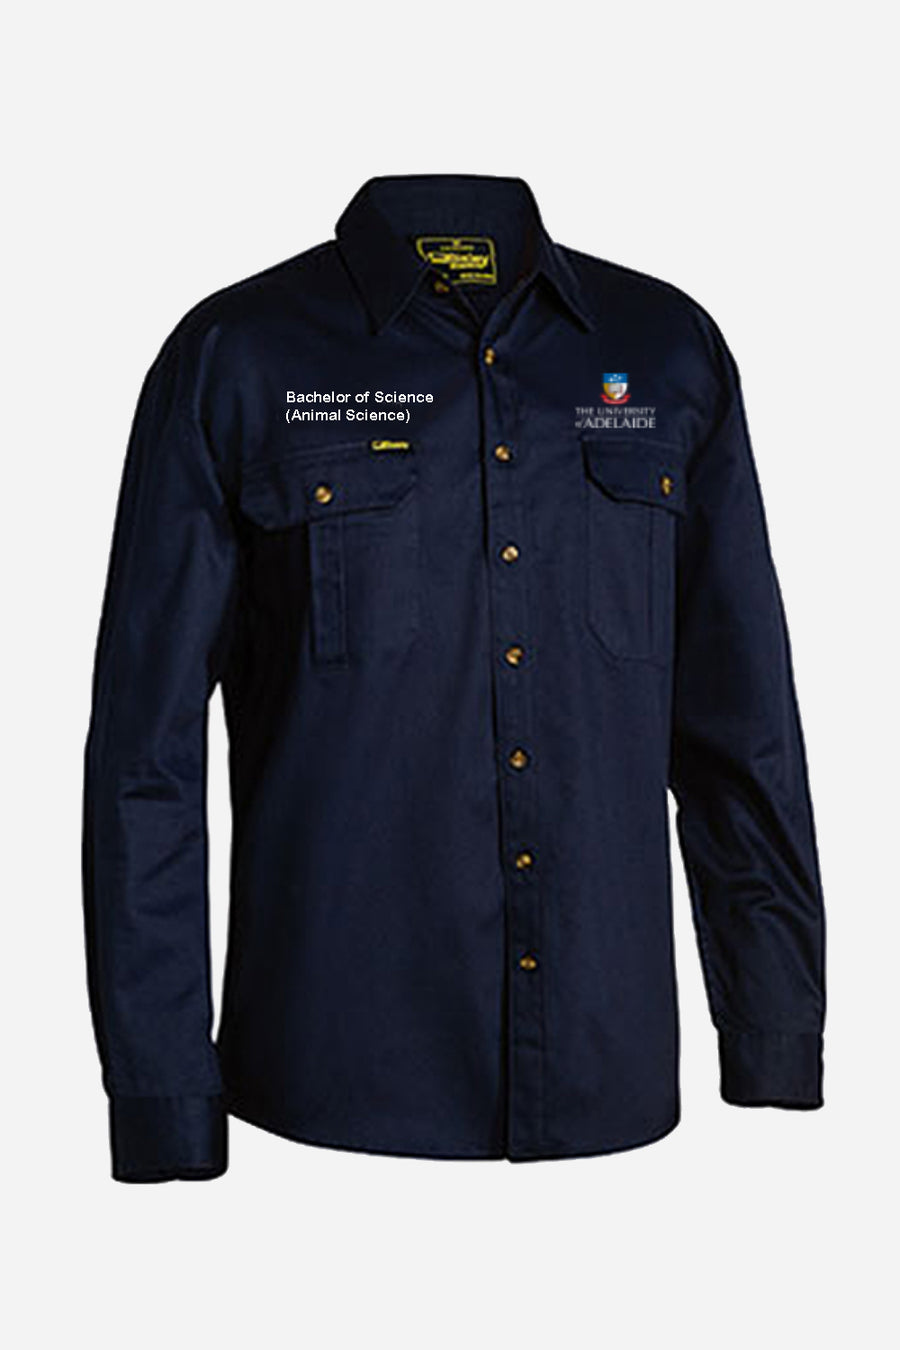 Bachelor of Science (Animal Sciences) men's drill shirt